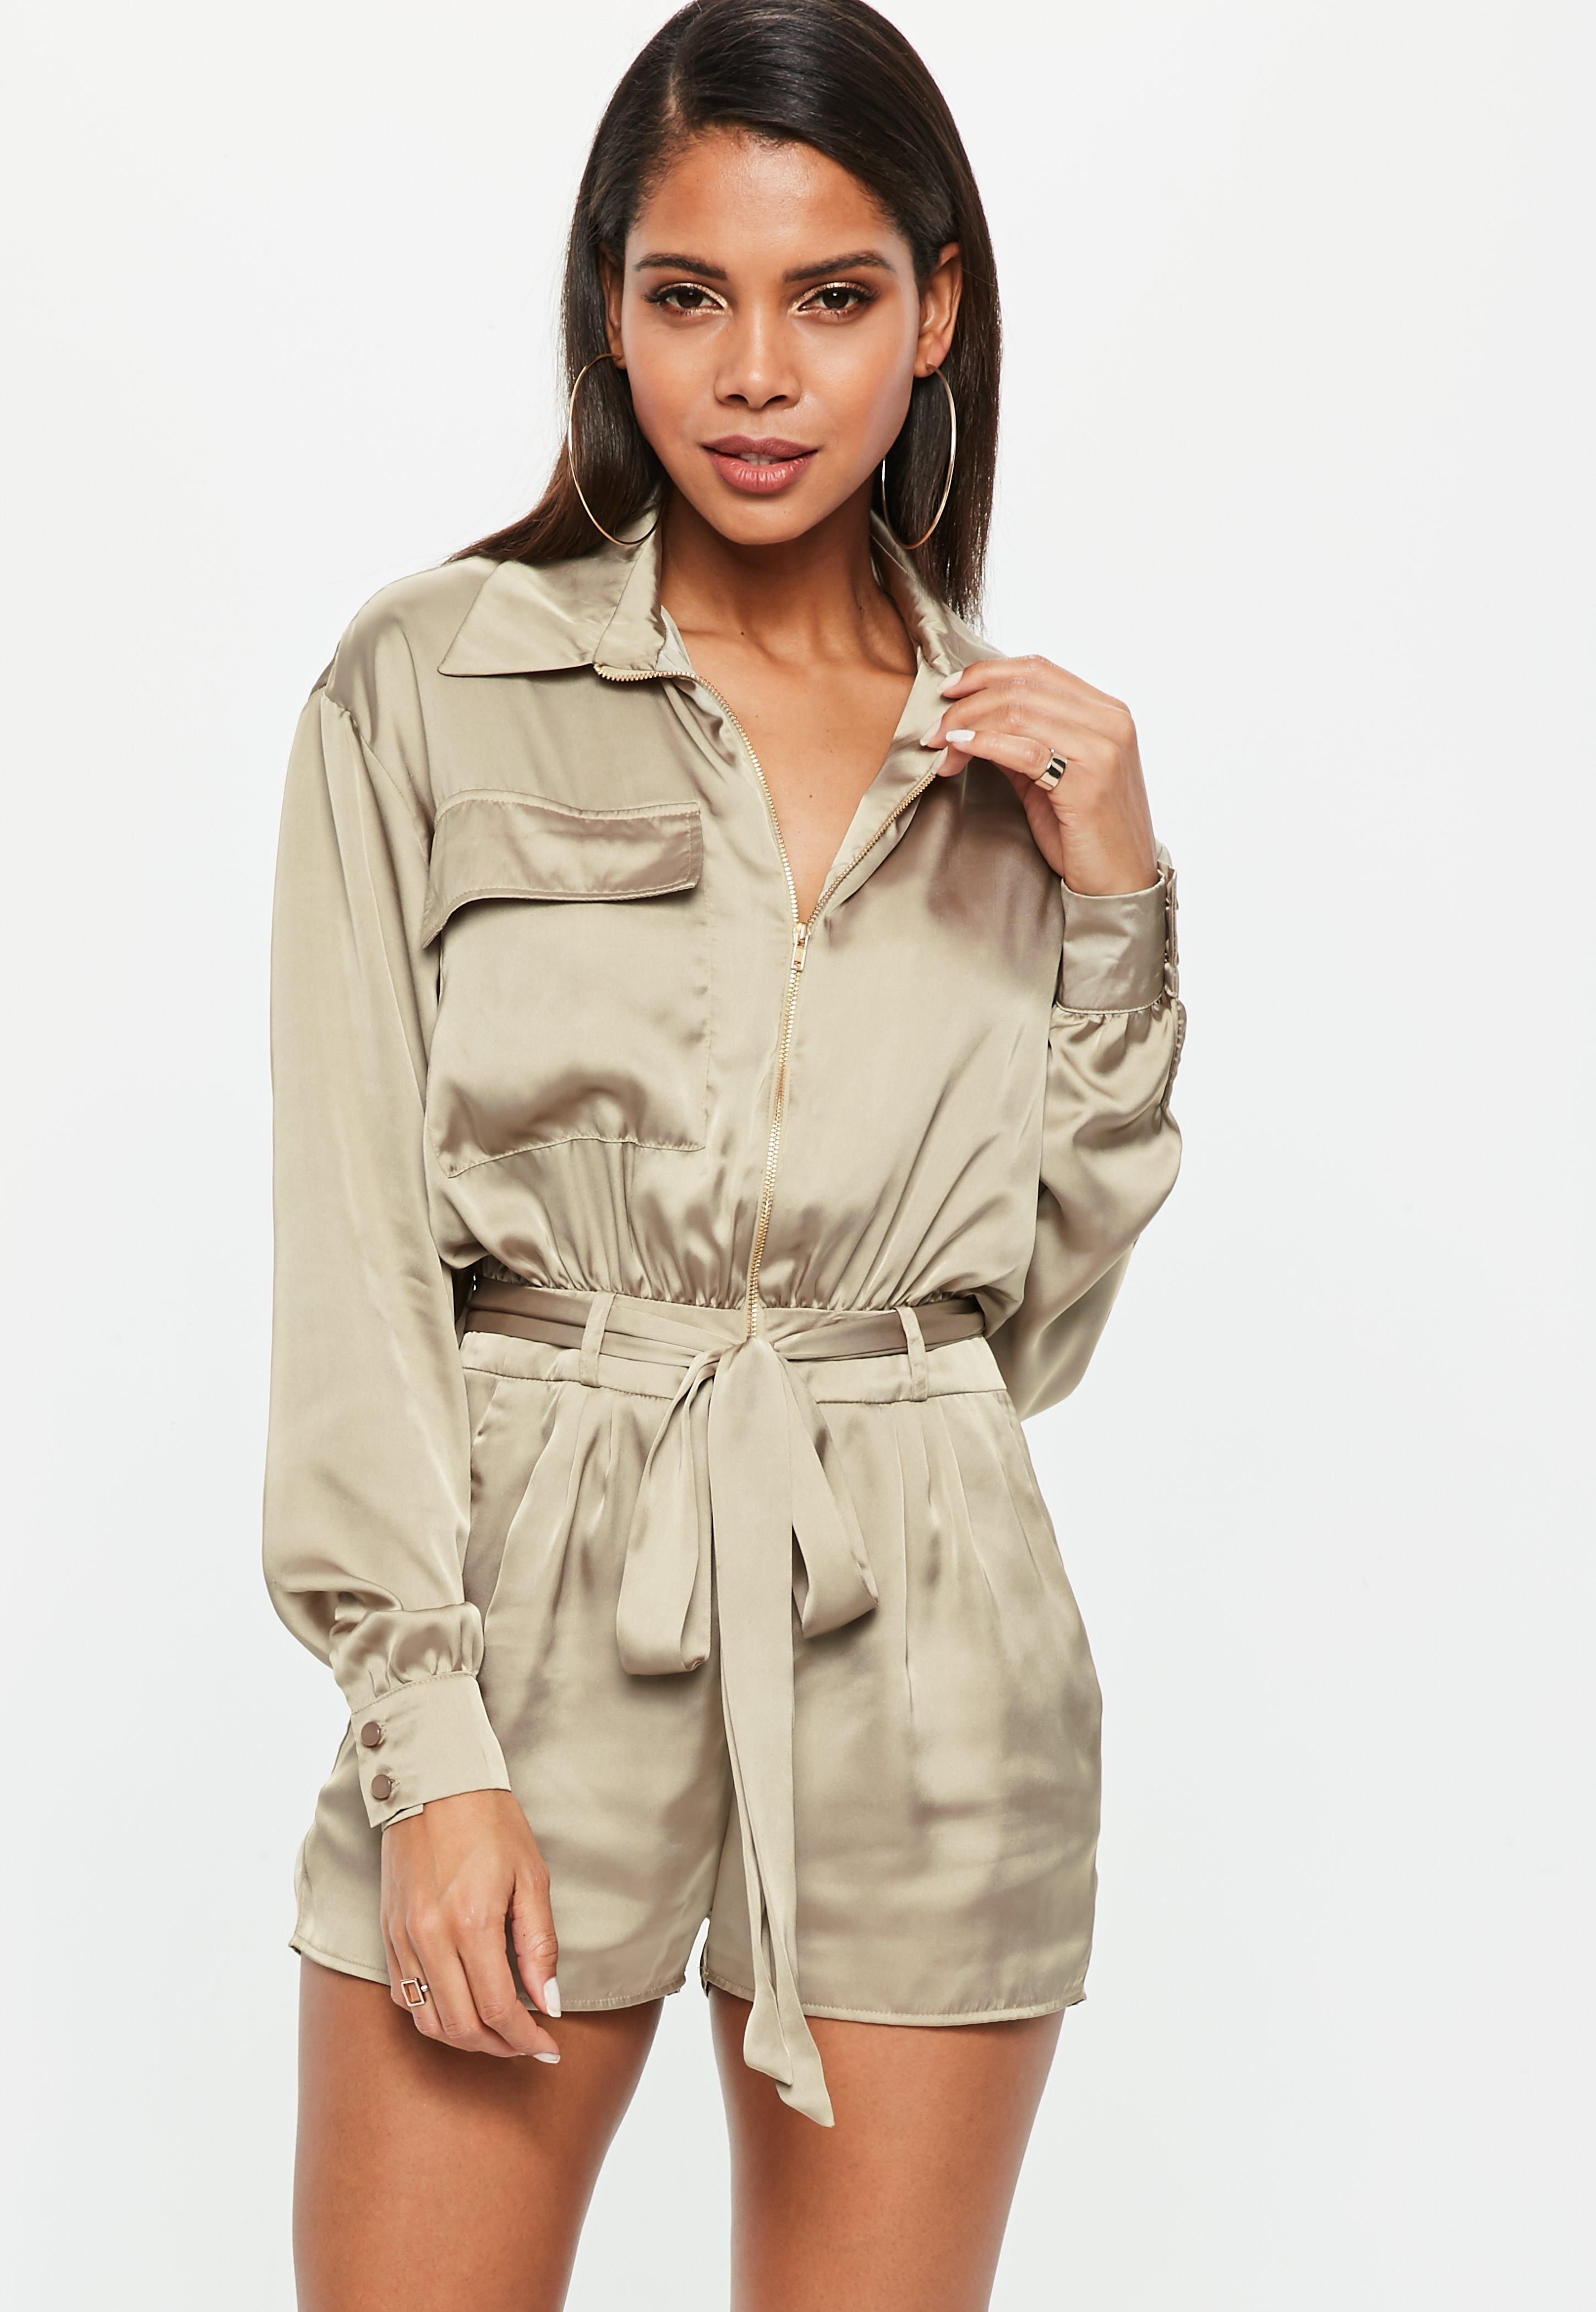 2c77e15a25 Missguided Khaki Satin Long Sleeve Utility Belted Playsuit in ...